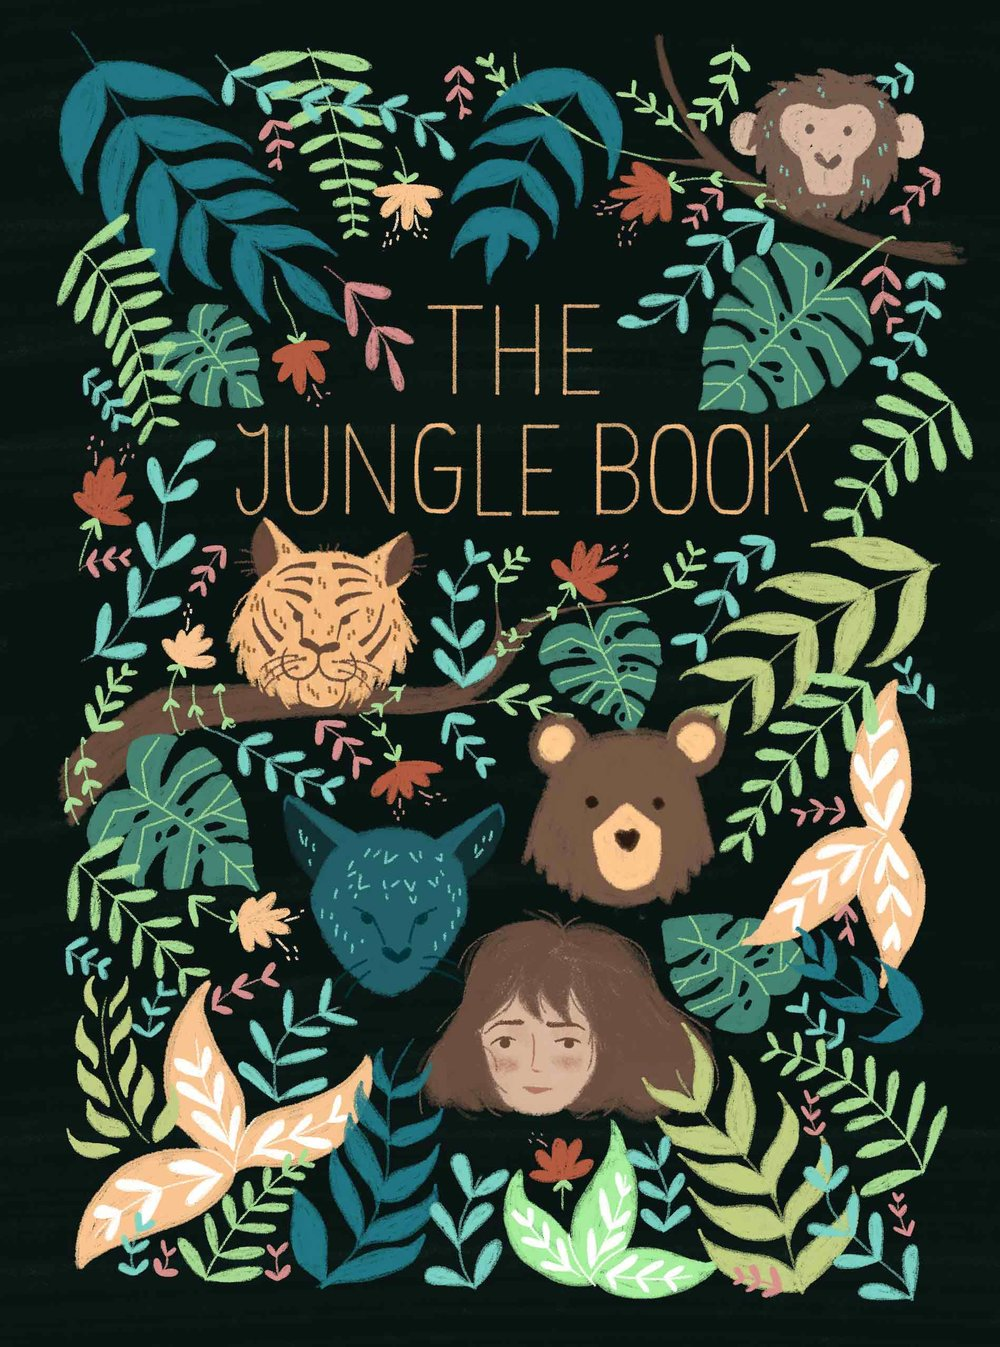 Illustrated The Jungle Book book cover, characters in the jungle.